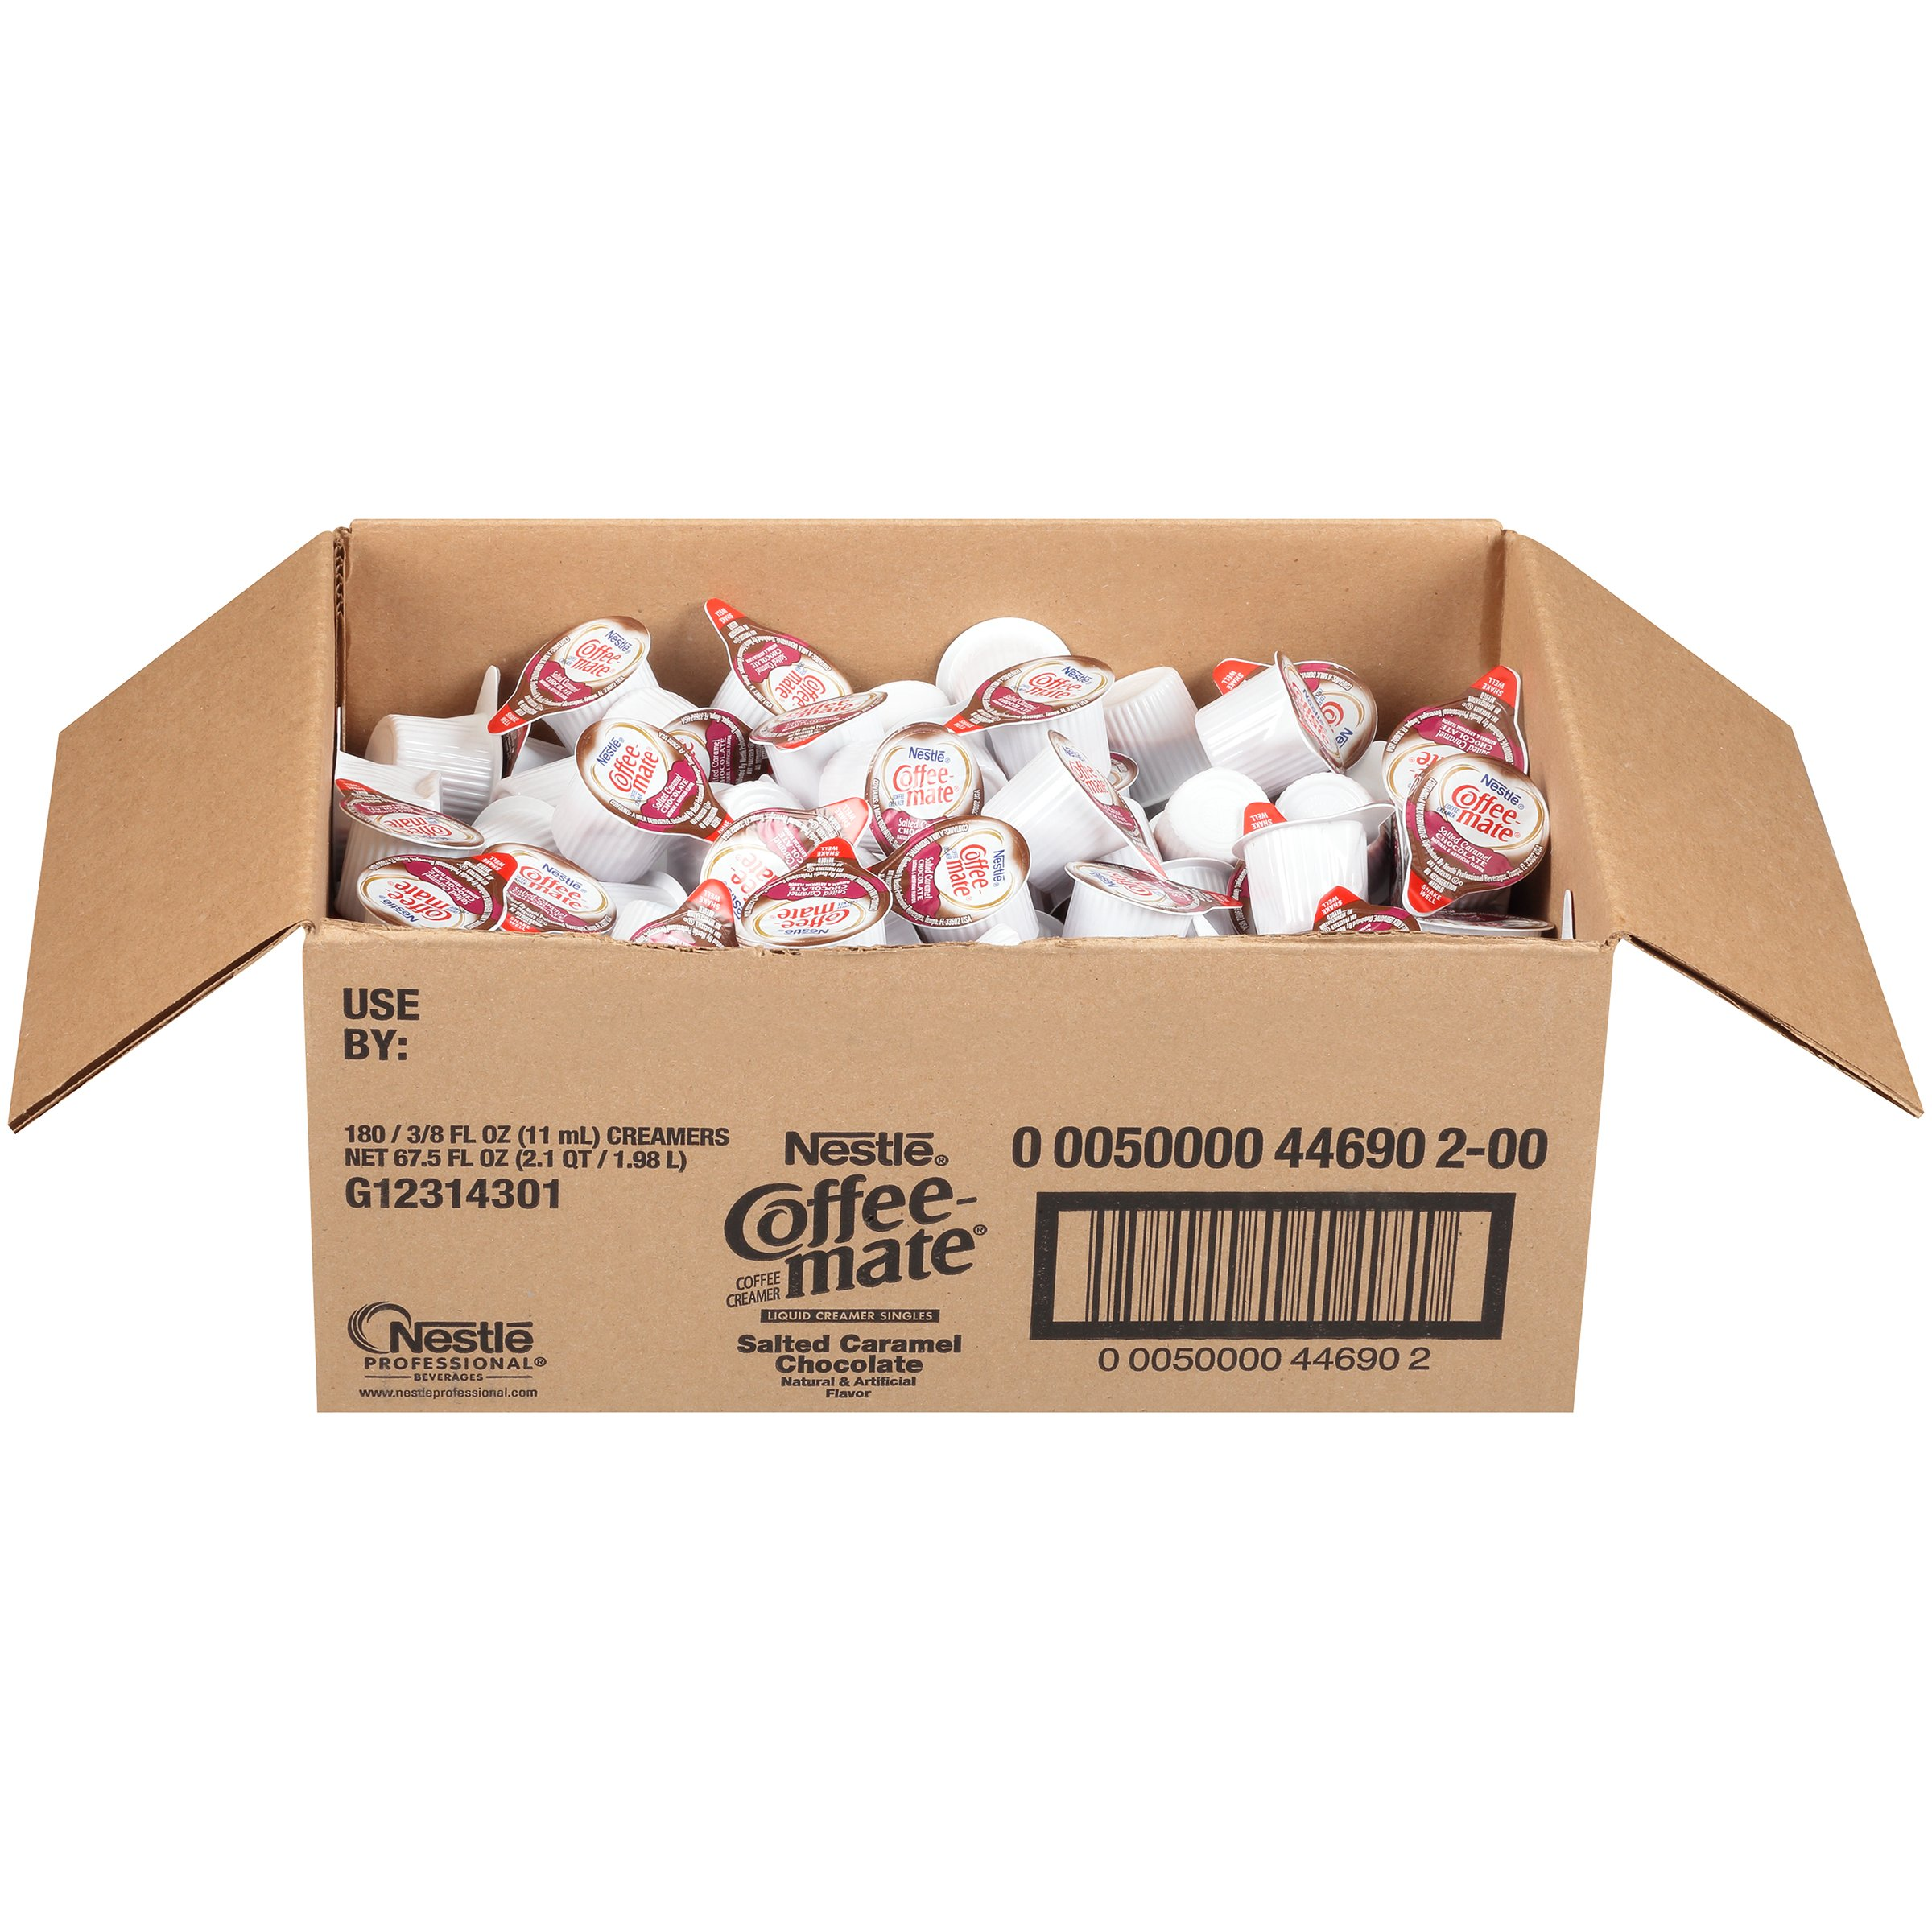 Nestle Coffee-mate Coffee Creamer, Salted Caramel Chocolate, liquid creamer singles, 180 Count (Pack of 1) by Nestle Coffee Mate